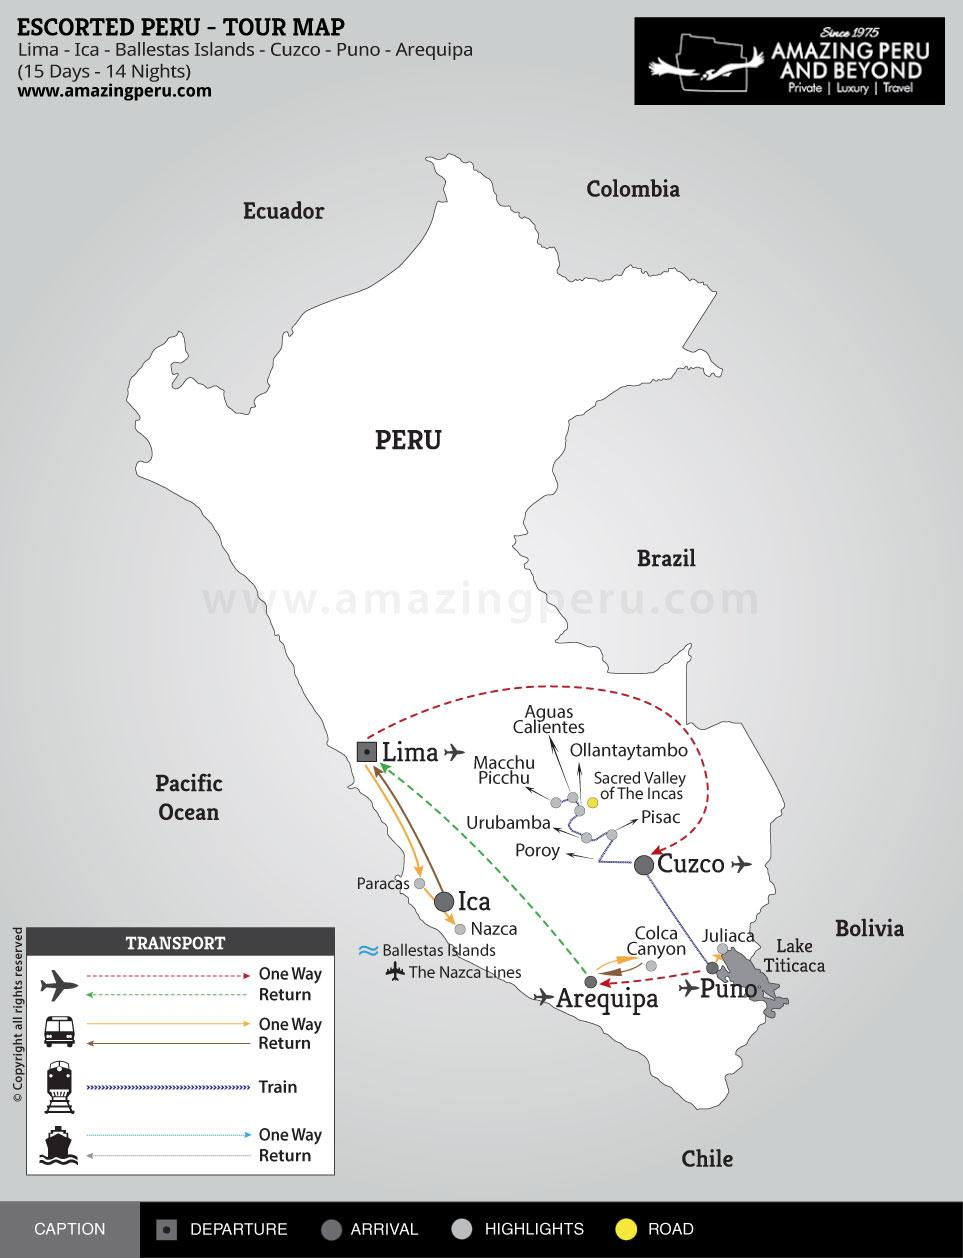 Escorted Peru Tour 1 - 15 days / 14 nights.